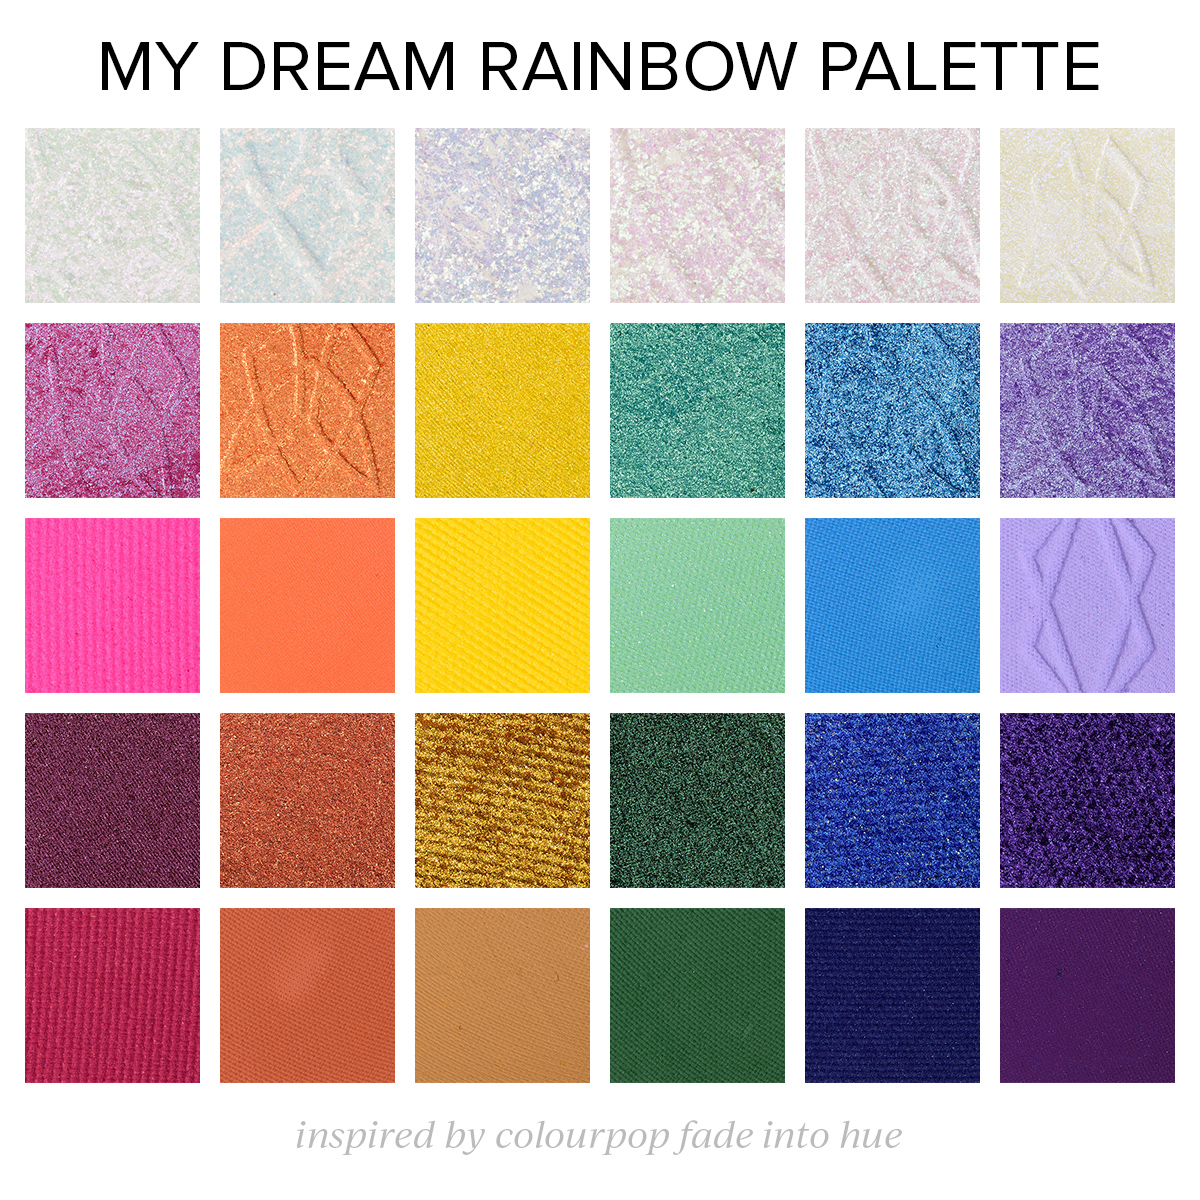 A Rainbow-Inspired Palette to Dream About